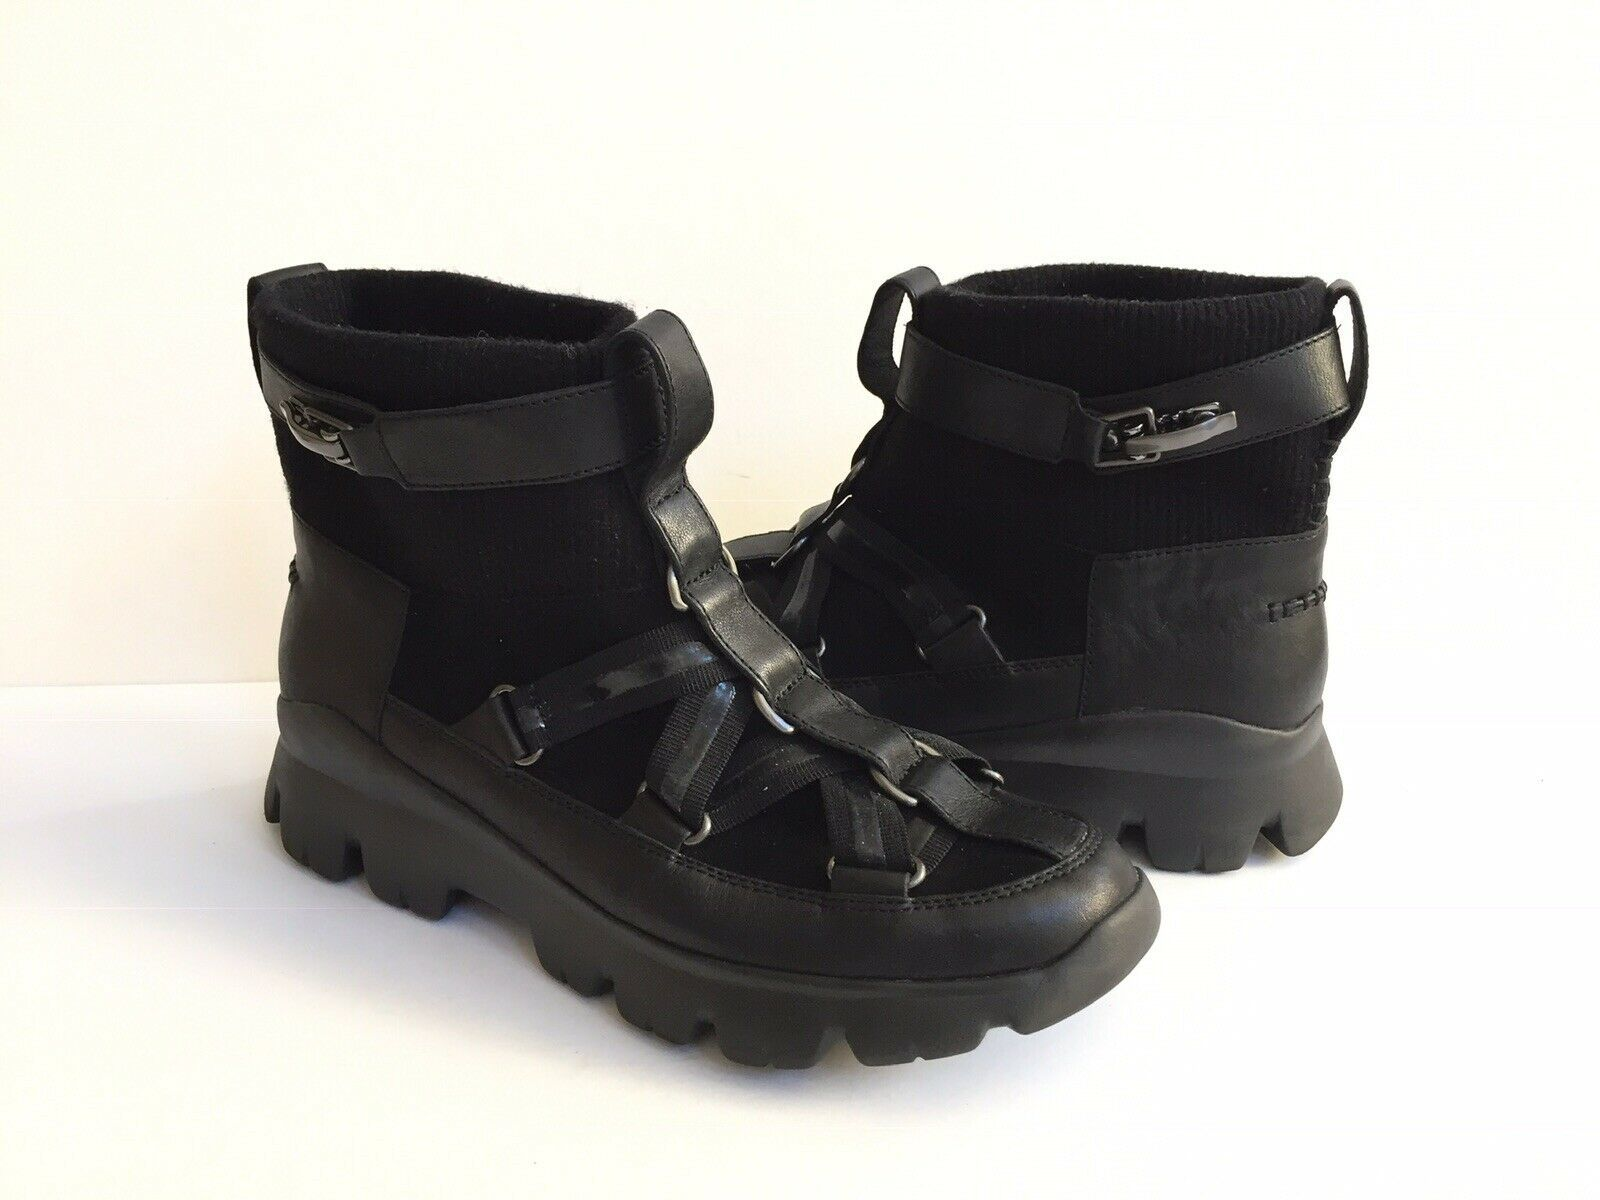 UGG PUFF MOMMA LAKES & LIGHTS BLACK WINTER FUR SNEAKERS US 11 / EU 42 / UK 9